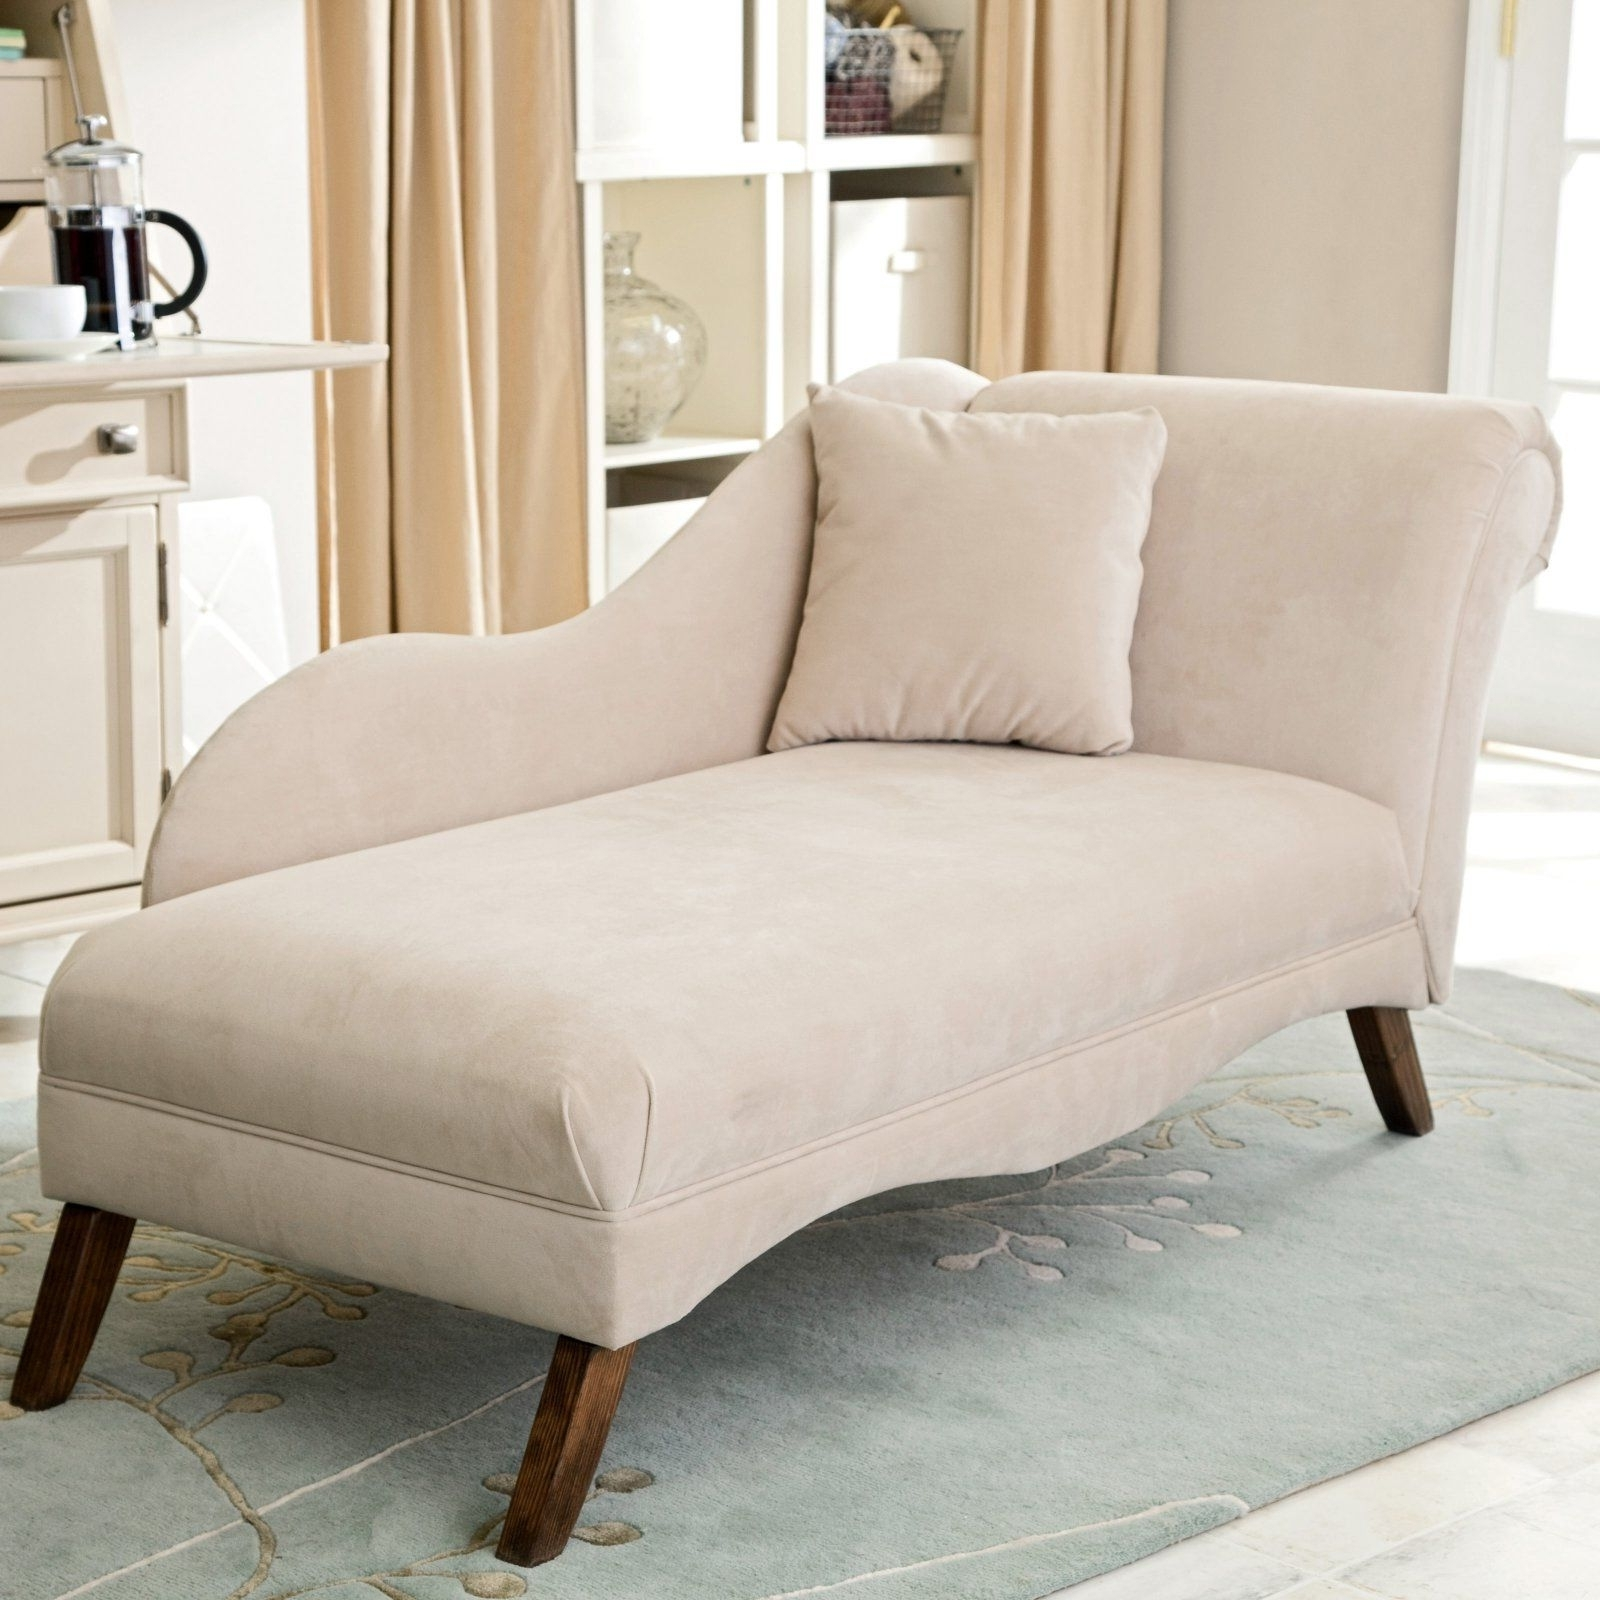 Favorite Contemporary Small Chaise Lounge Tufted With Pillow (View 2 of 15)